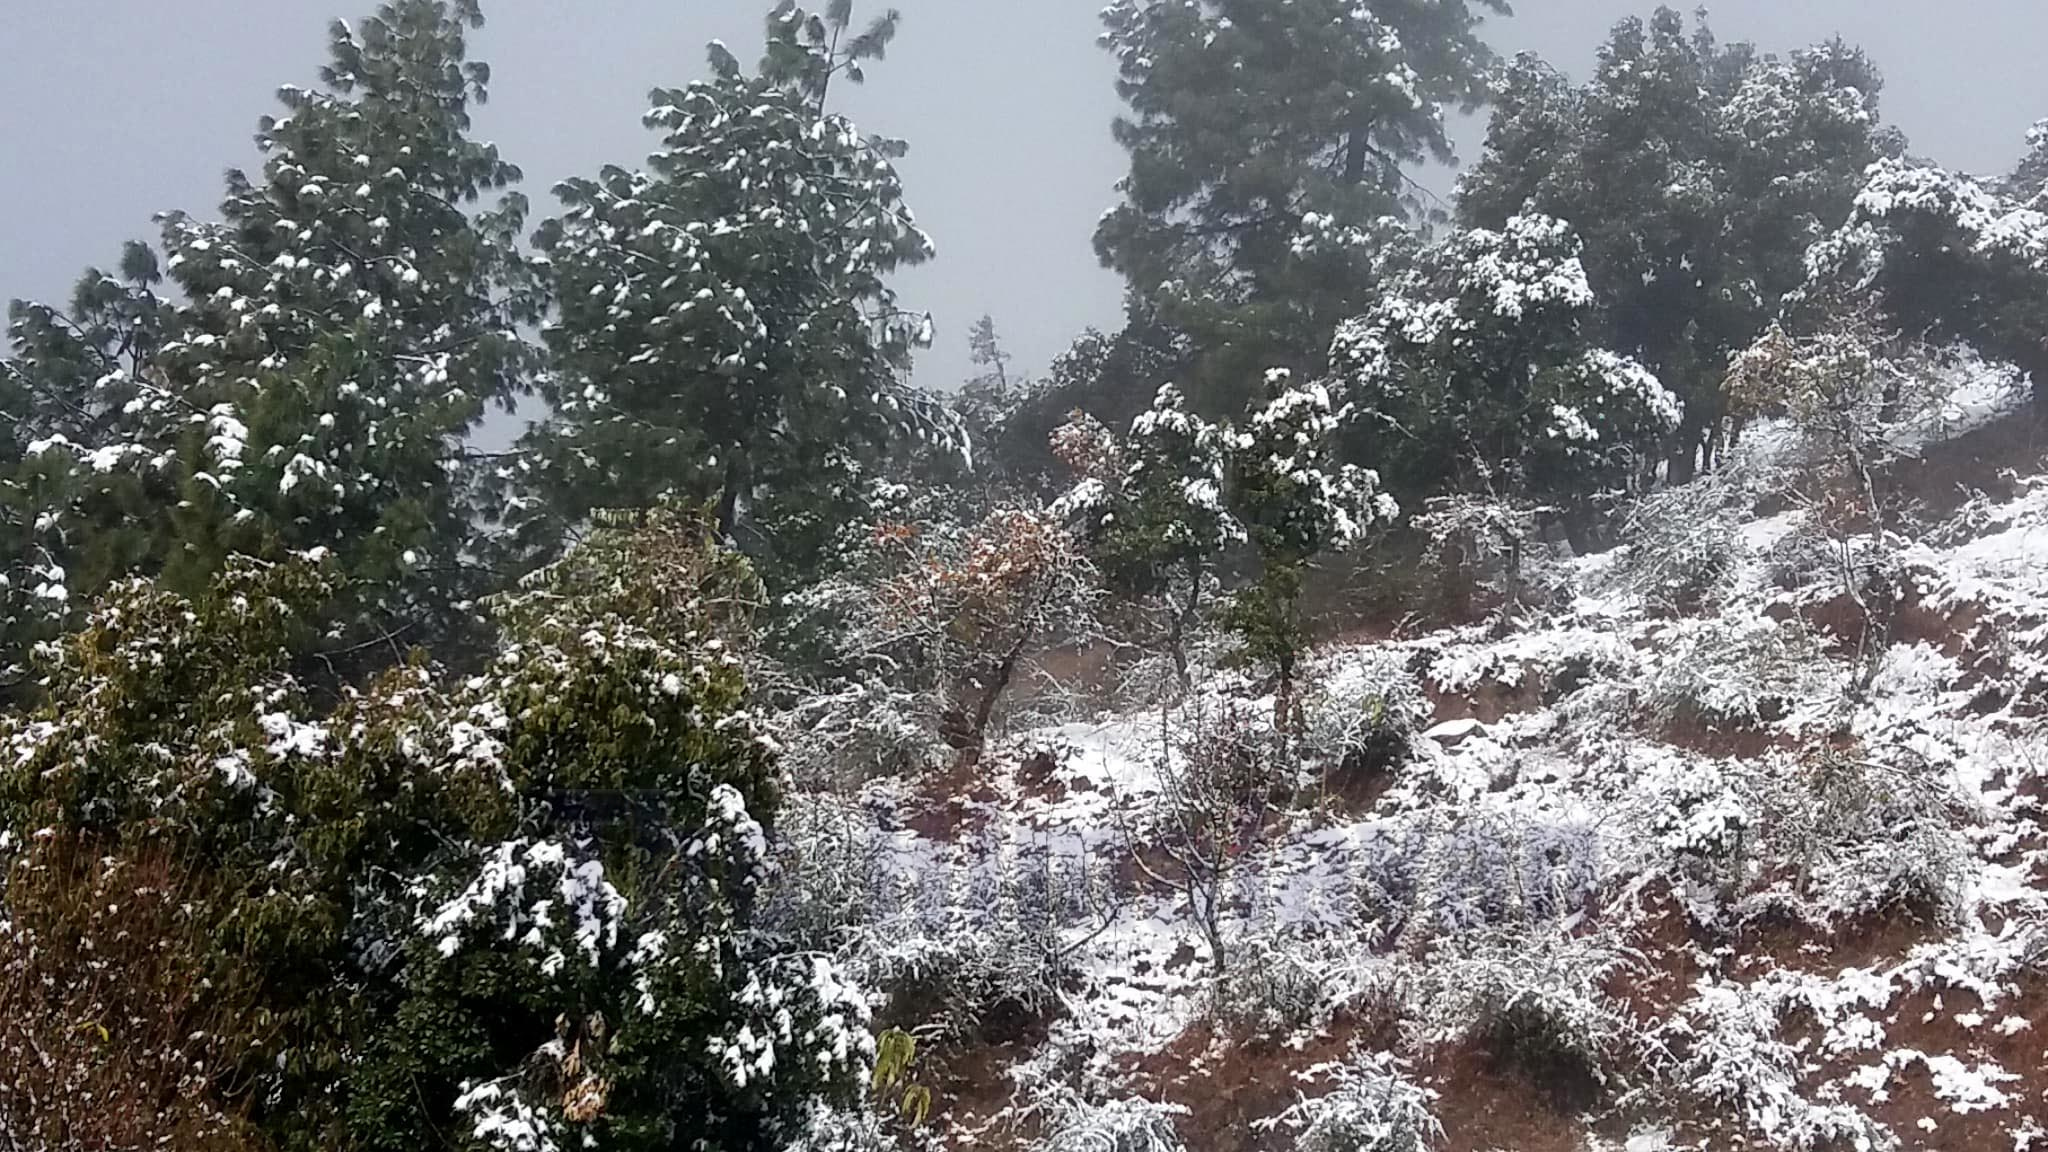 A view of vegetation covered in snow in Baghkhor, the district headquarters of Dadeldhura, on Friday, January 3, 2020. Photo: Baburam Sapkota/THT